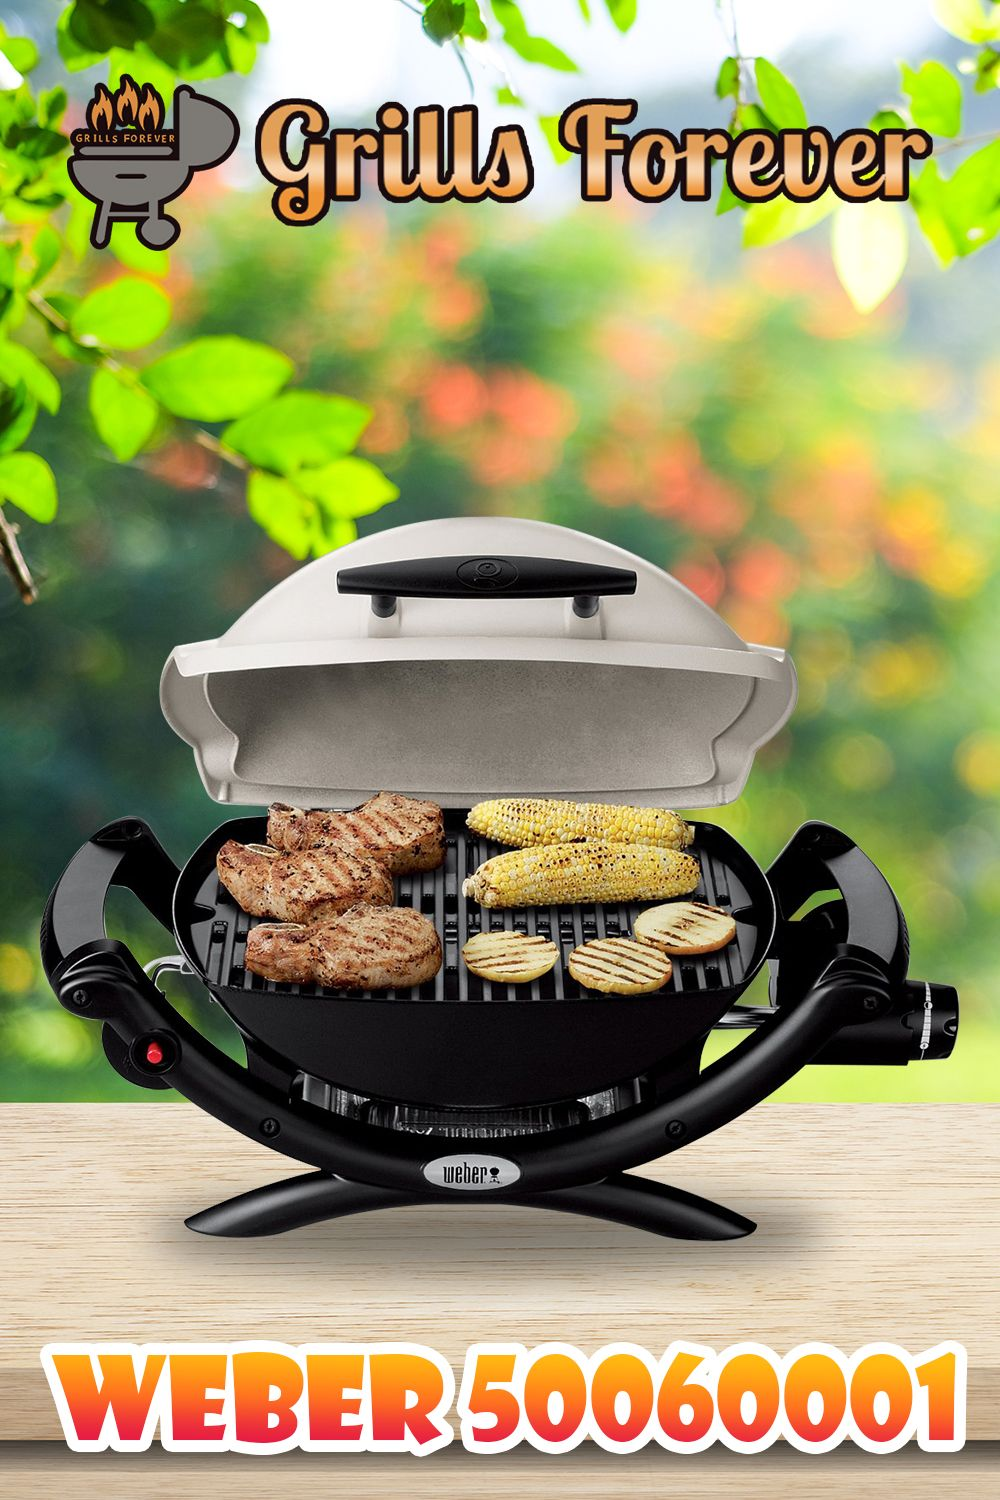 Top 10 Weber Grills June 2020 Reviews Buyers Guide Grills Forever Weber Grill Weber Bbq Grilling